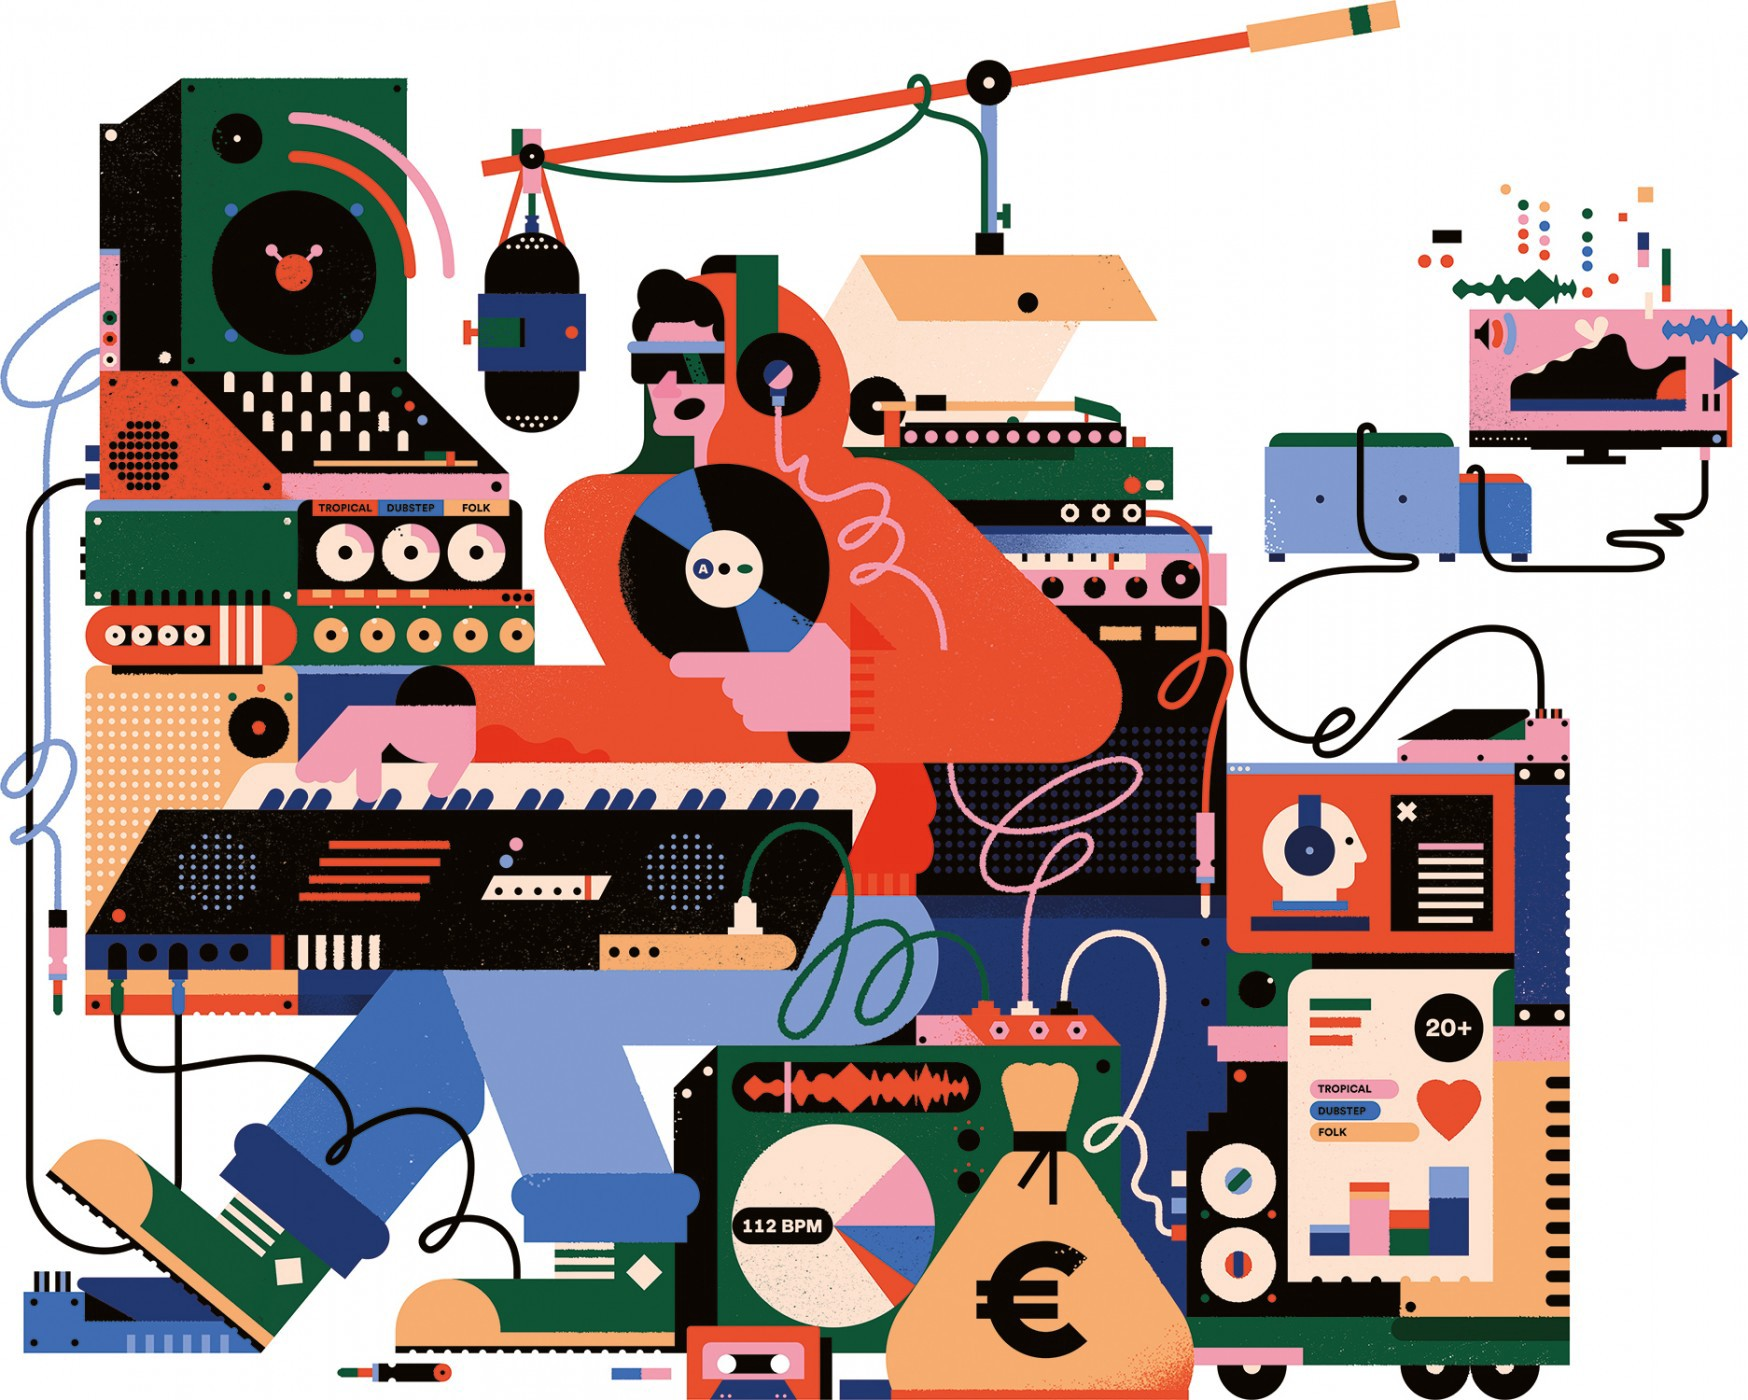 Different tools that are used for making music represented in a cartoon illustration design